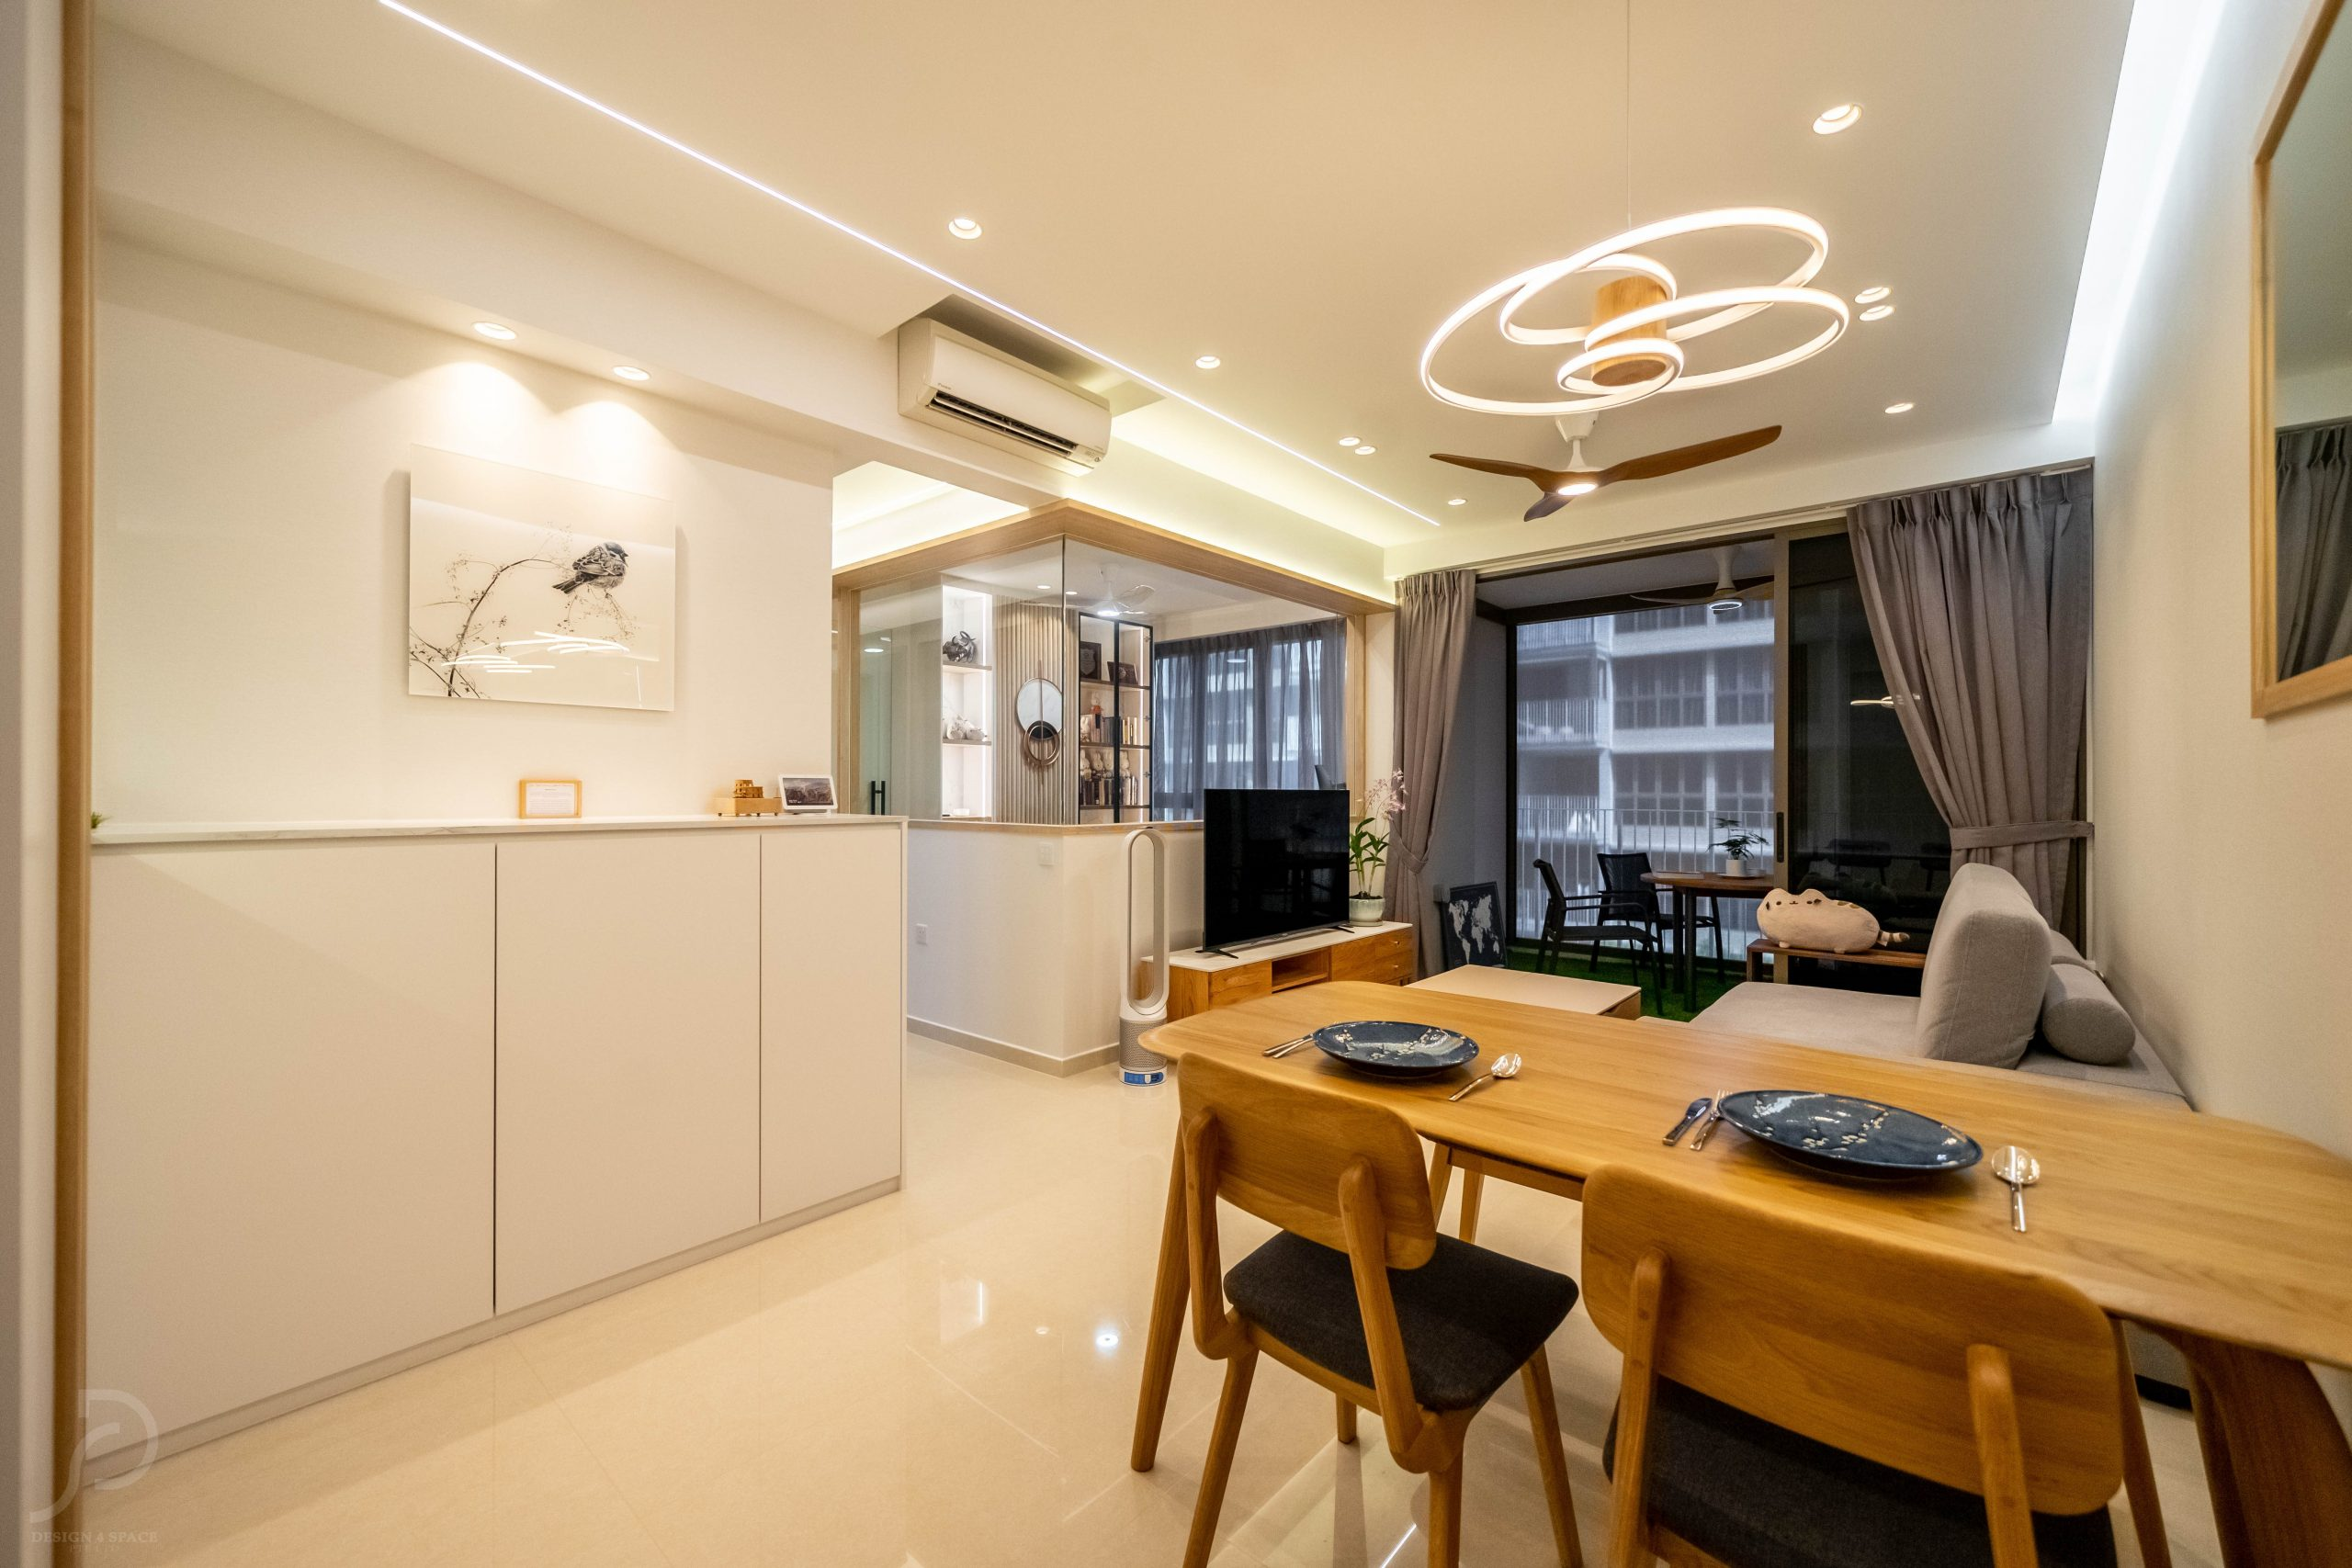 357 - rivercove residence - vincent - mid res watermark40